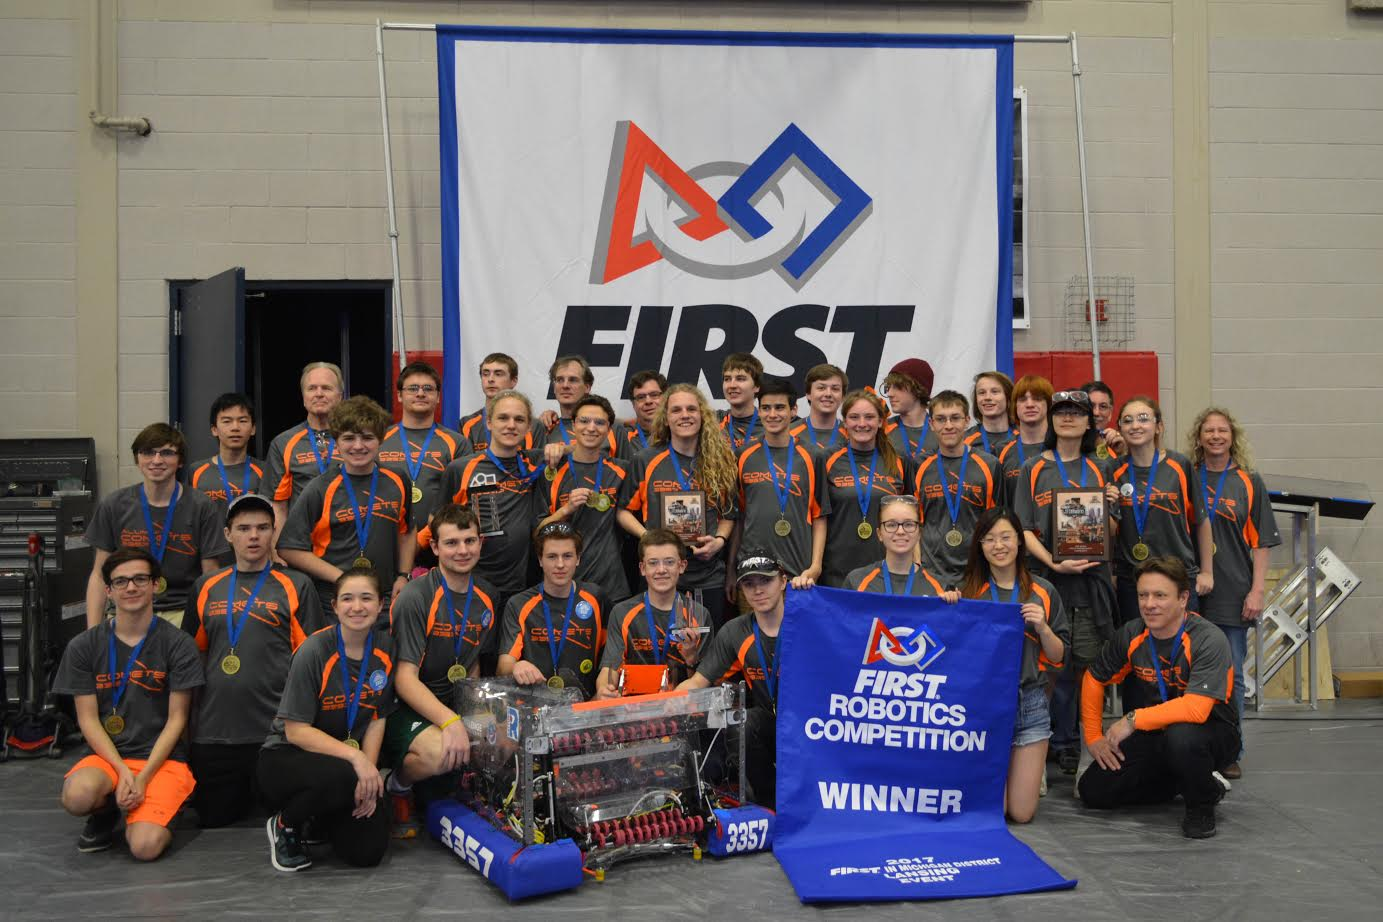 FHC Robotics team takes first place at their competition